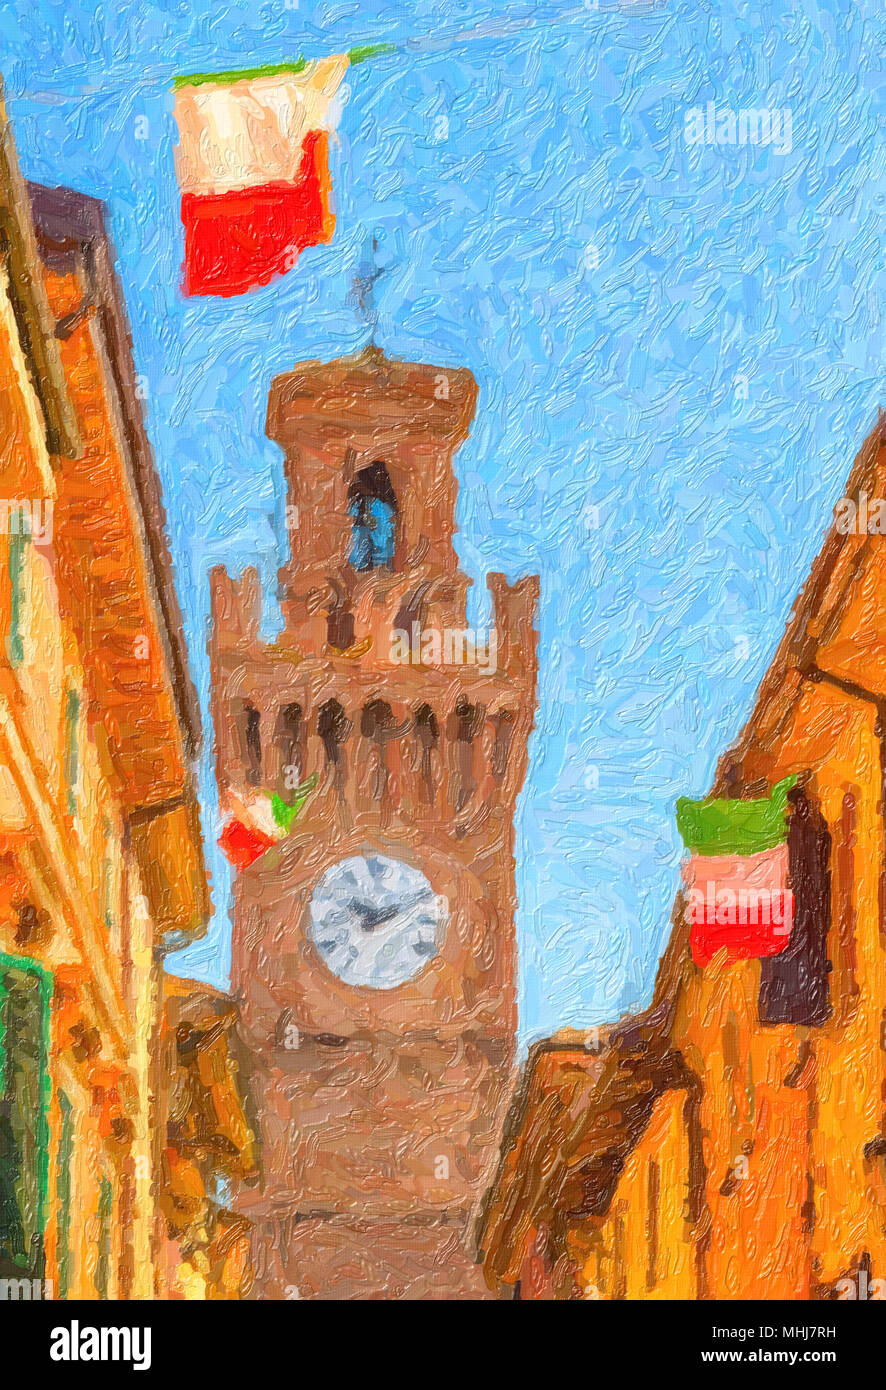 illustration of old city street with colorful houses, clock tower and waving Italian flags - Stock Image